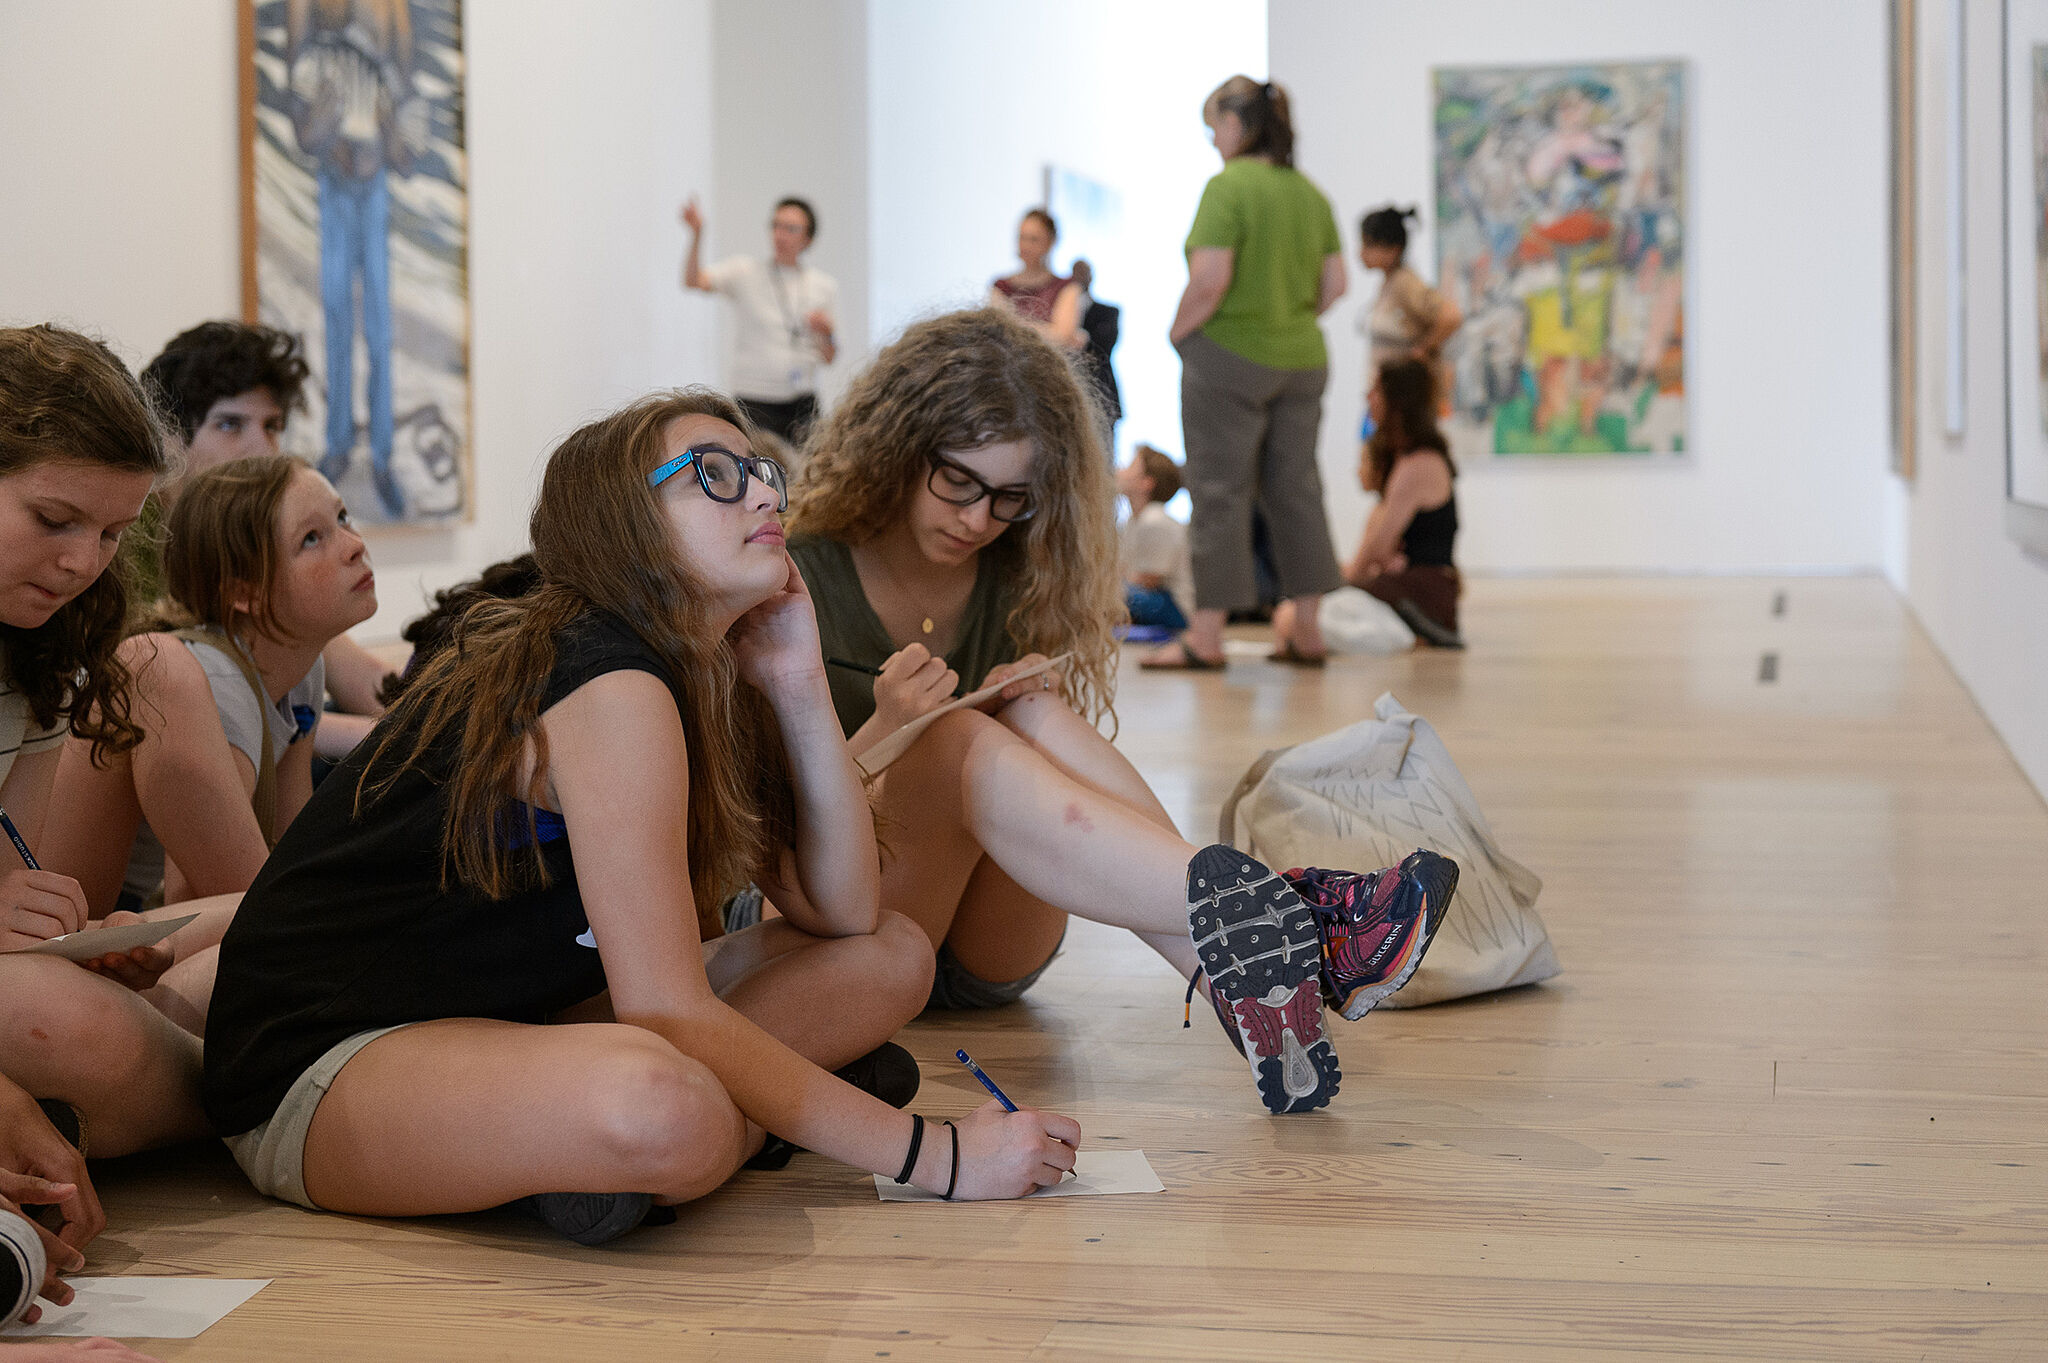 students sit looking up at artwork on gallery floor